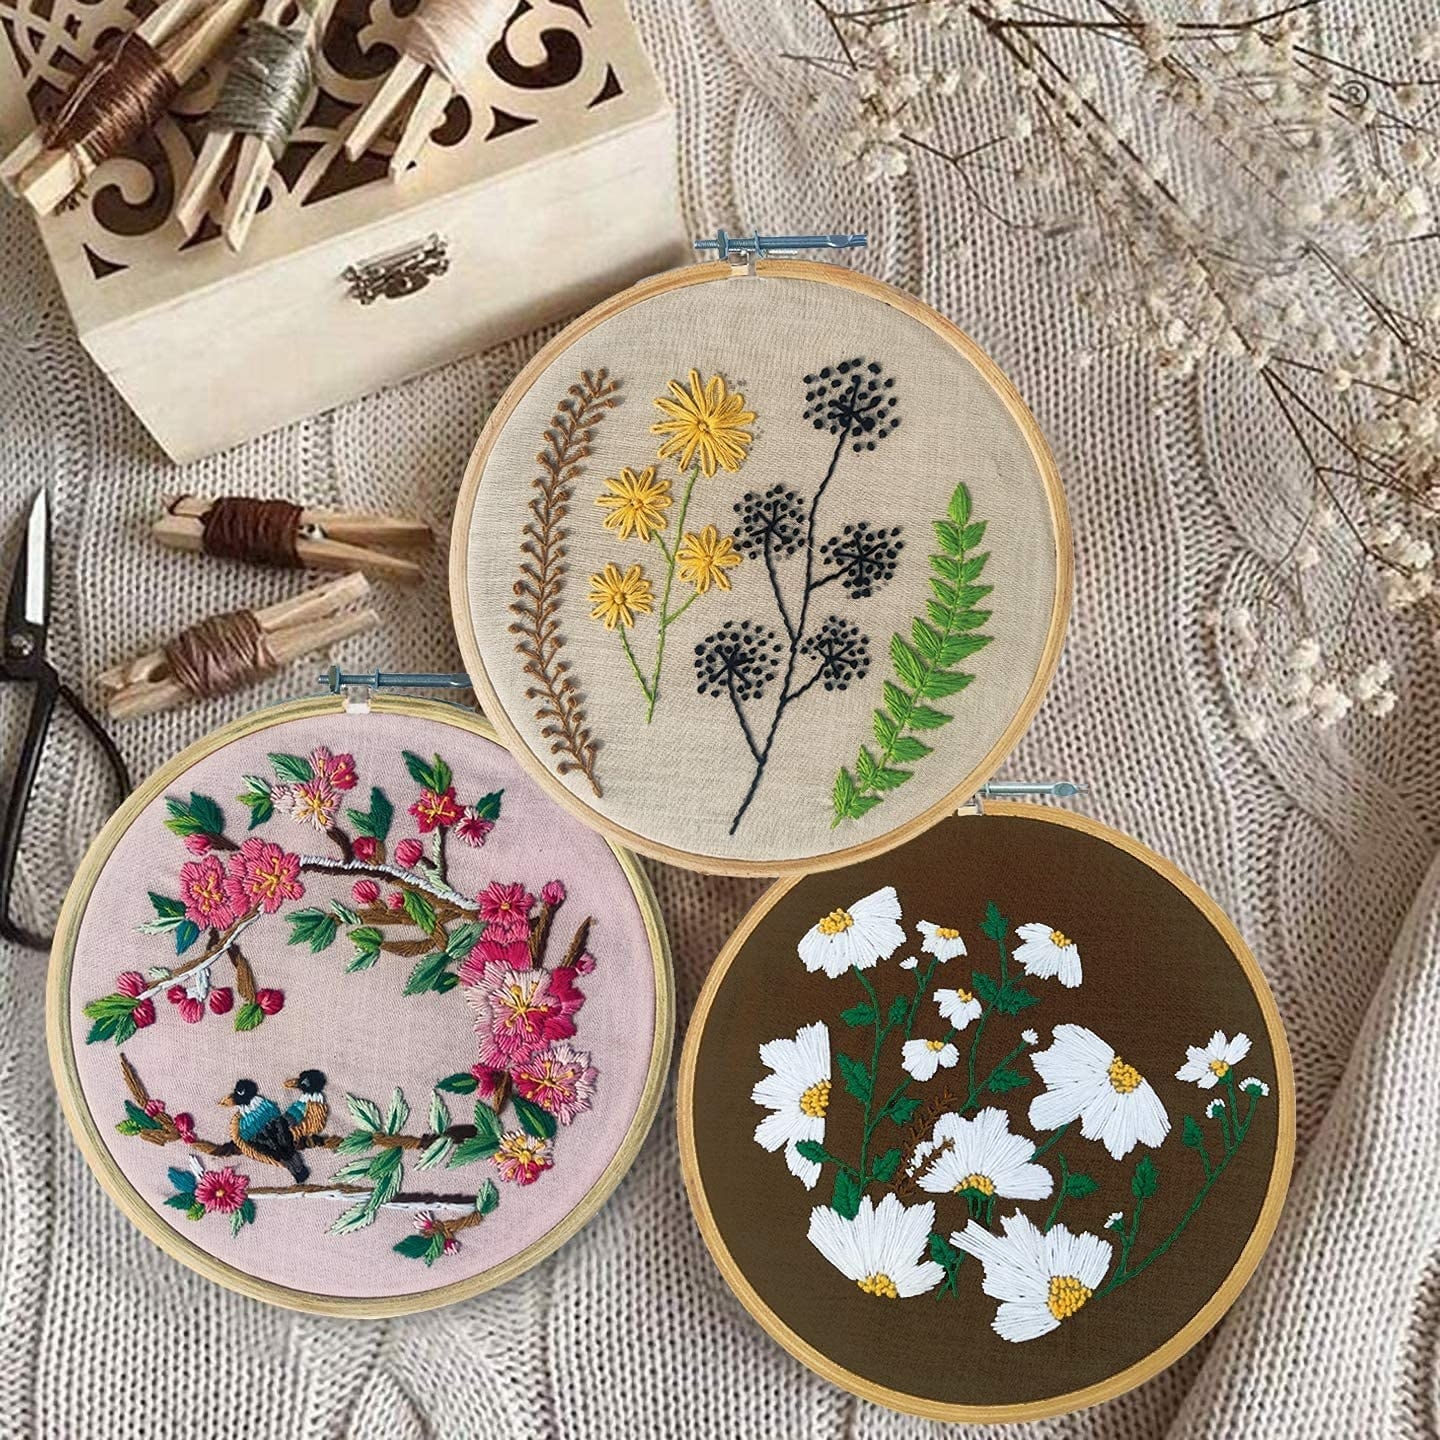 An embroidery kit with 4 sets